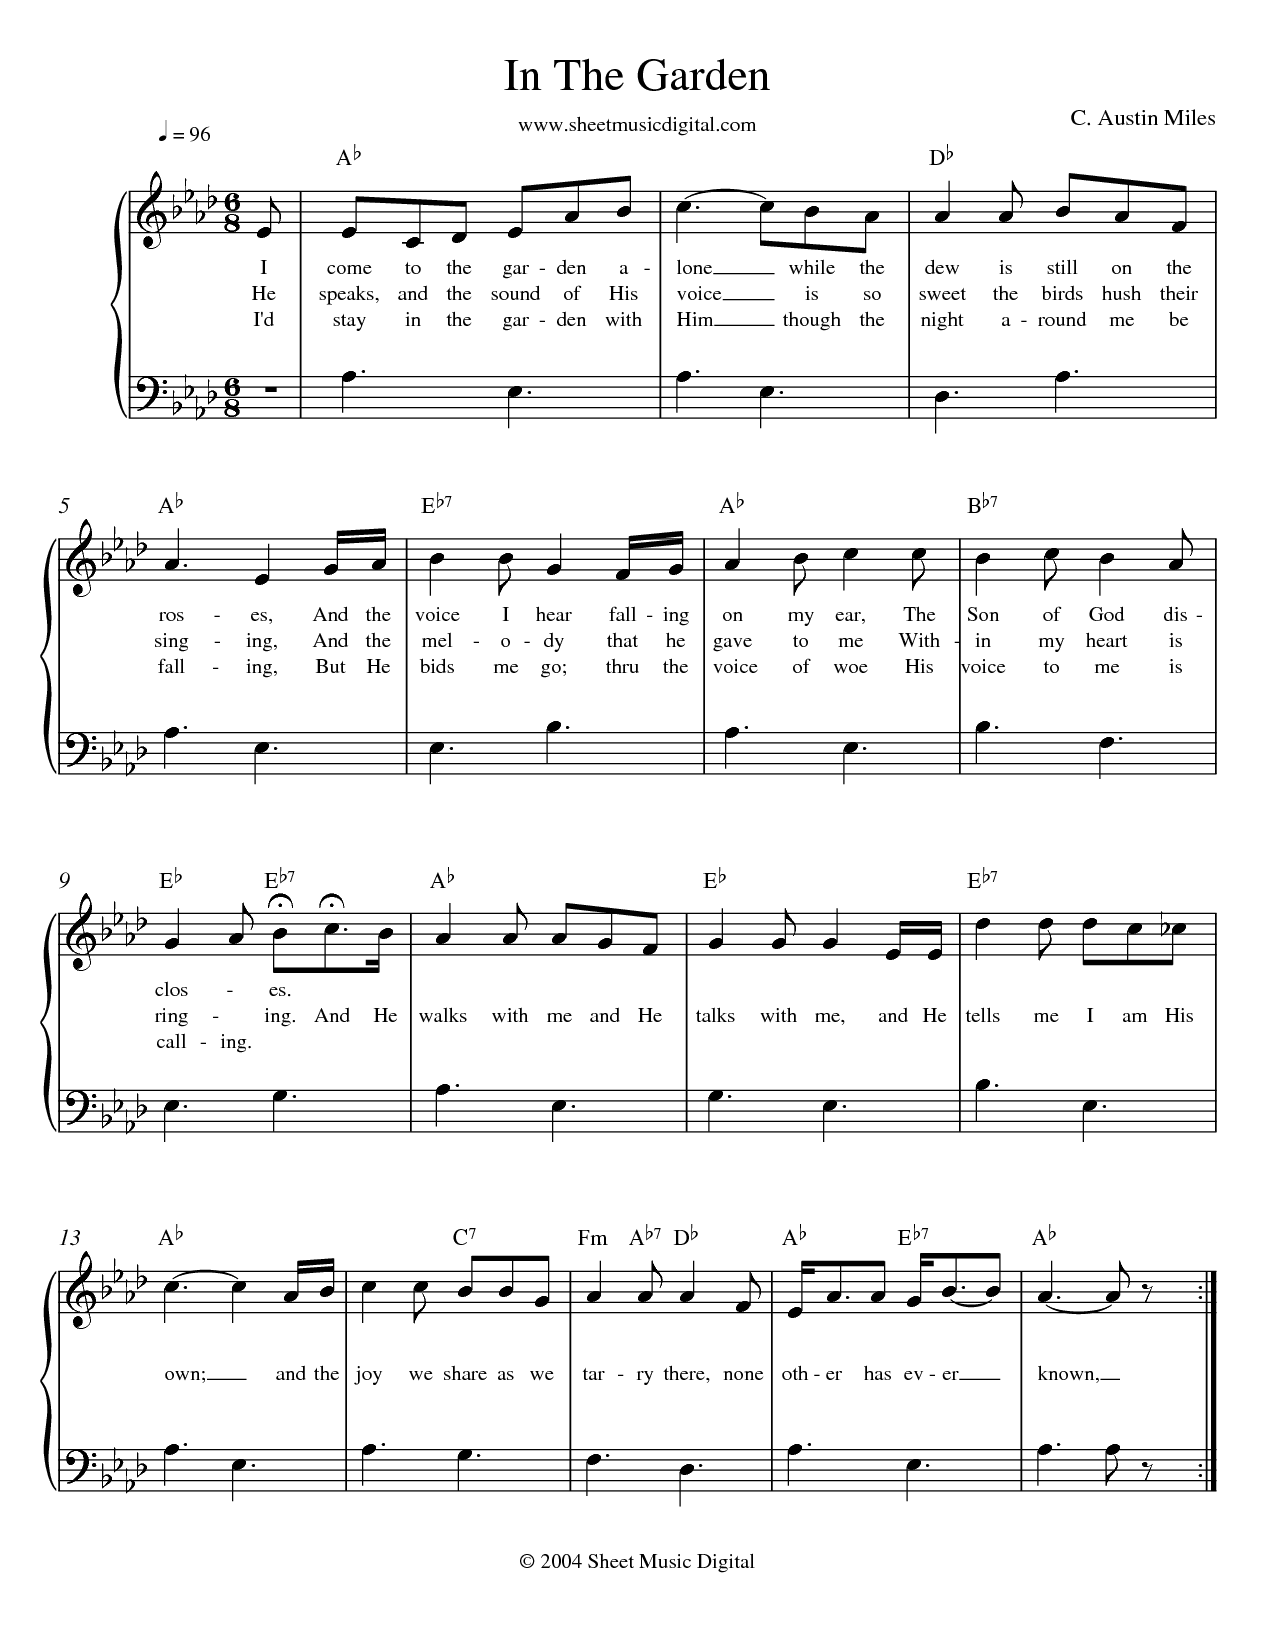 In The Garden Sheet Music Music For Piano And More Baptist Hymnal 1991 187 I Come To The Garden